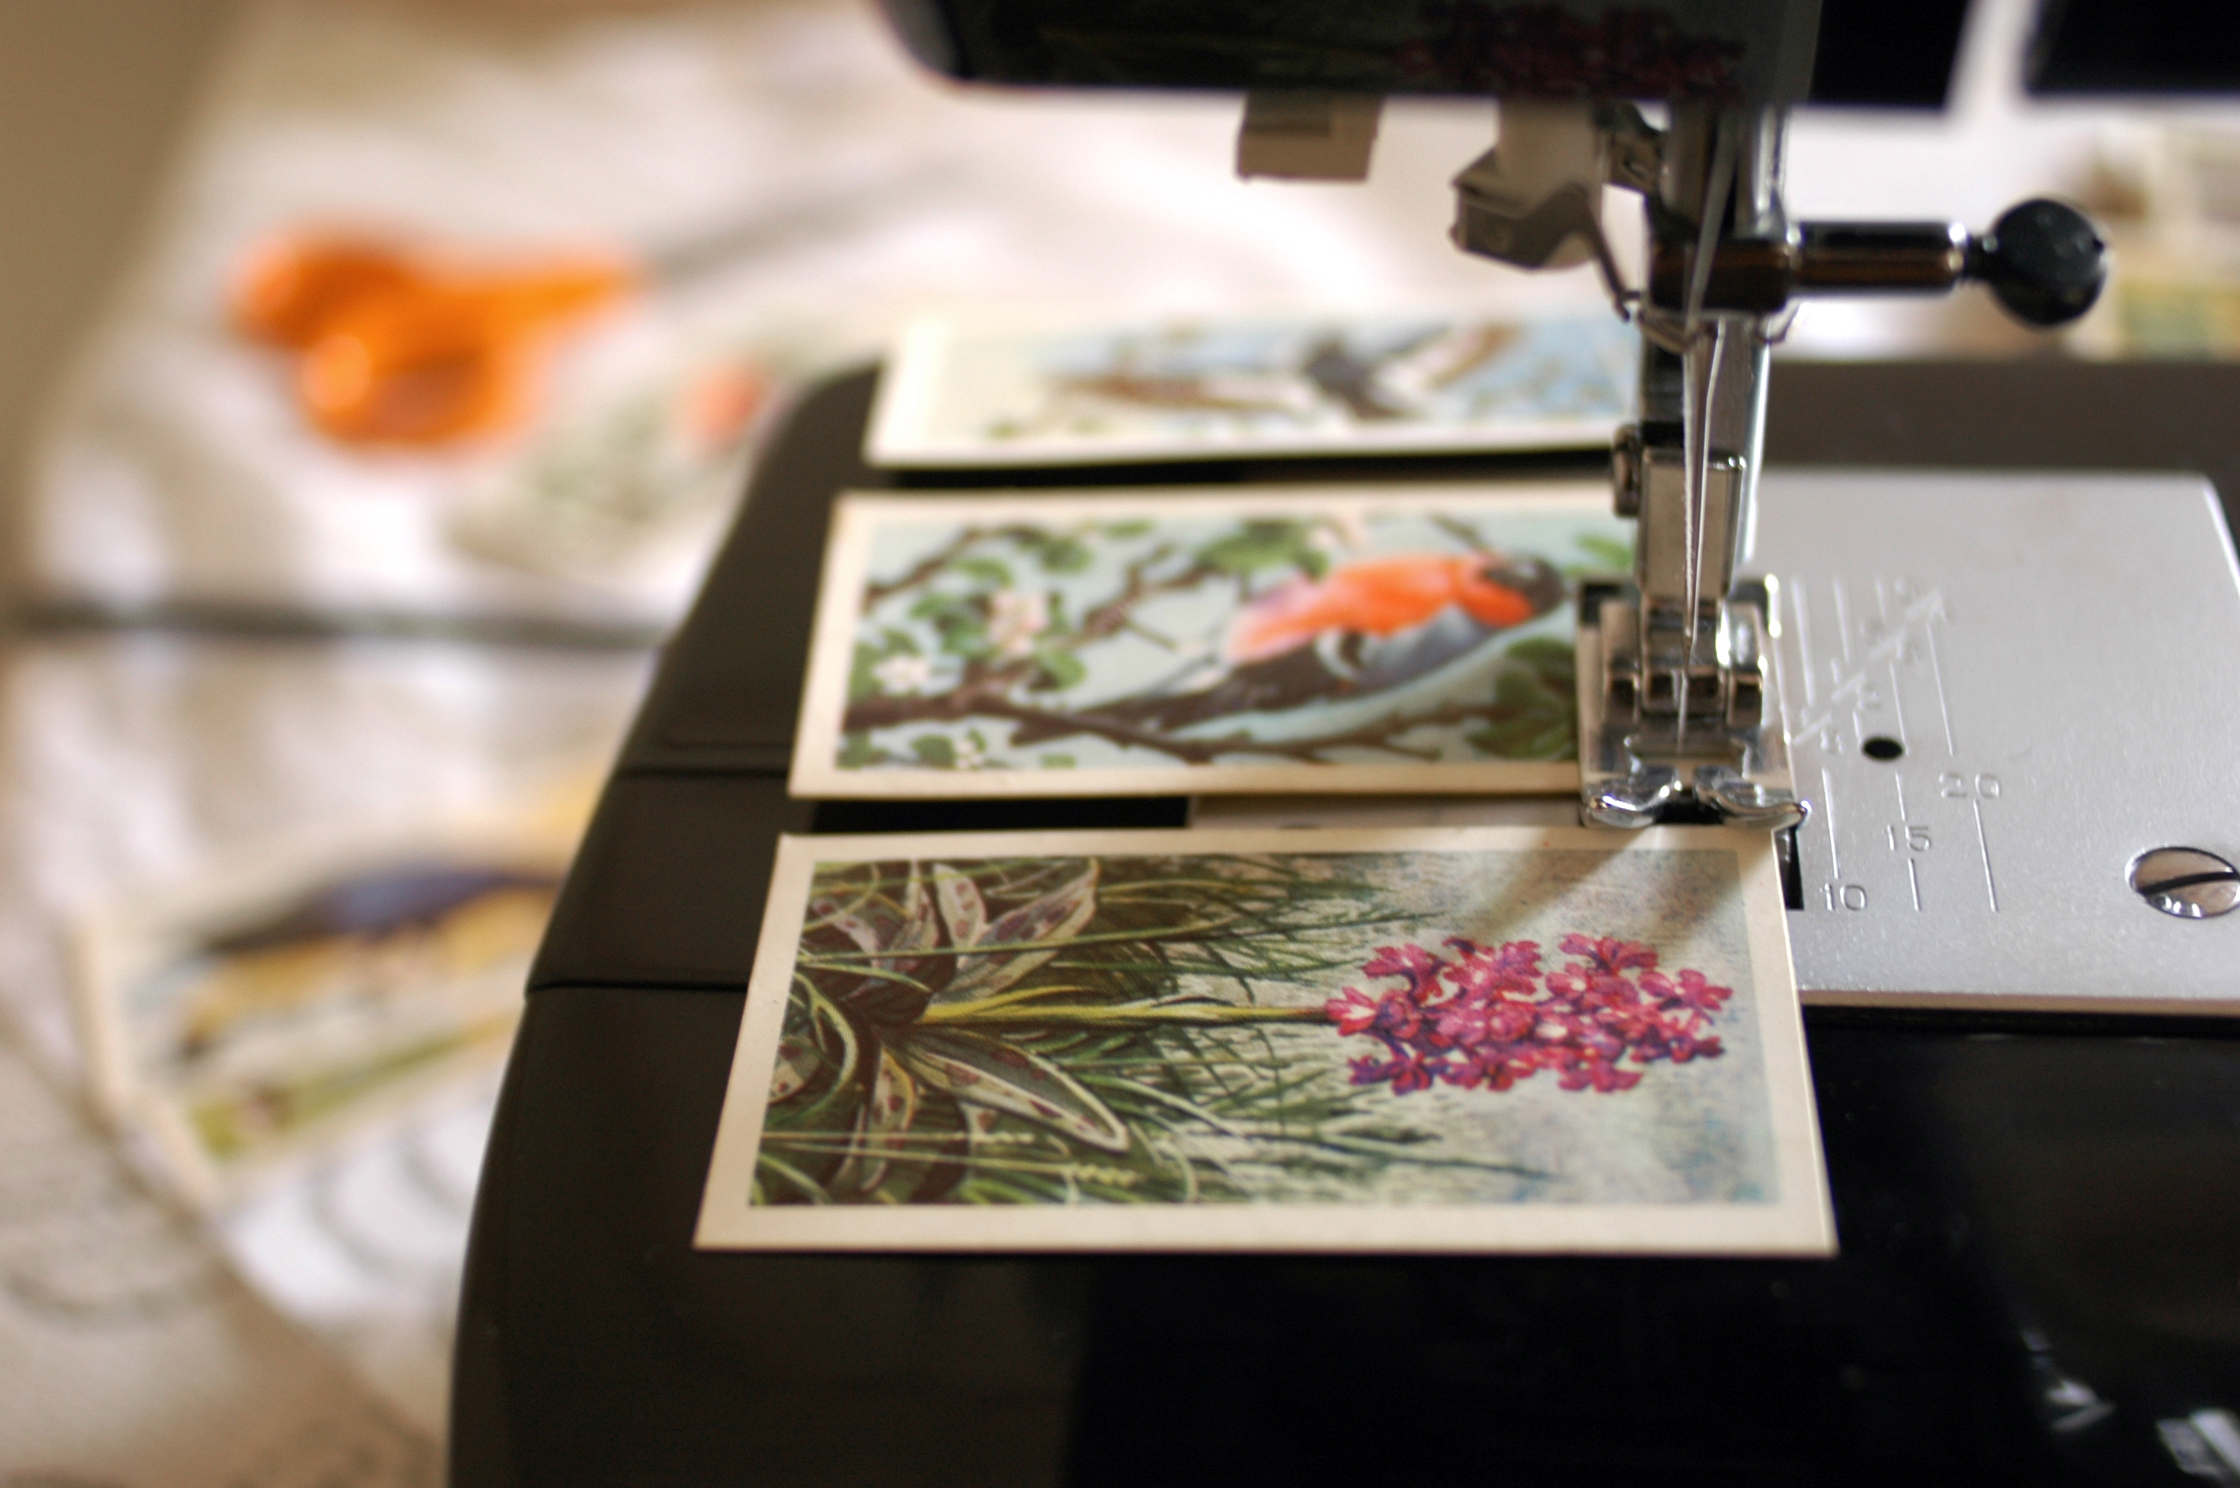 stitching cigarette cards to make a garland